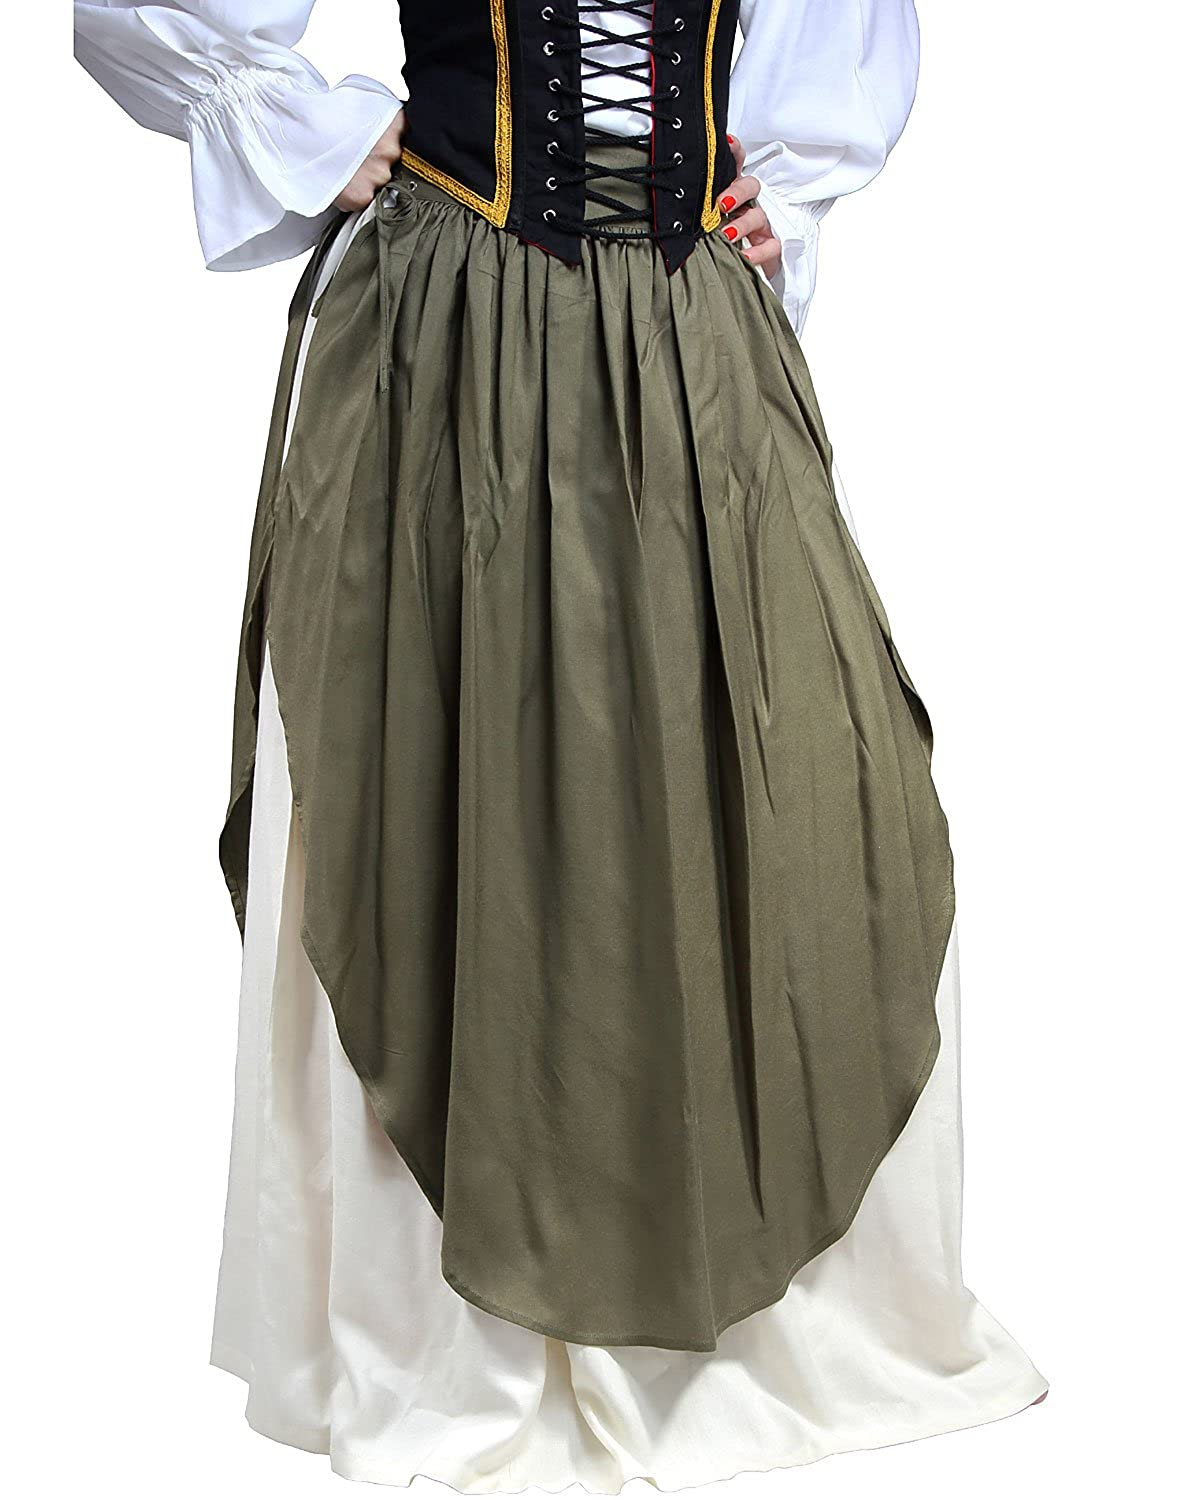 Renaissance Medieval Peasant Wench Layered Olive Green Apron Over White Skirt by ThePirateDressing - DeluxeAdultCostumes.com